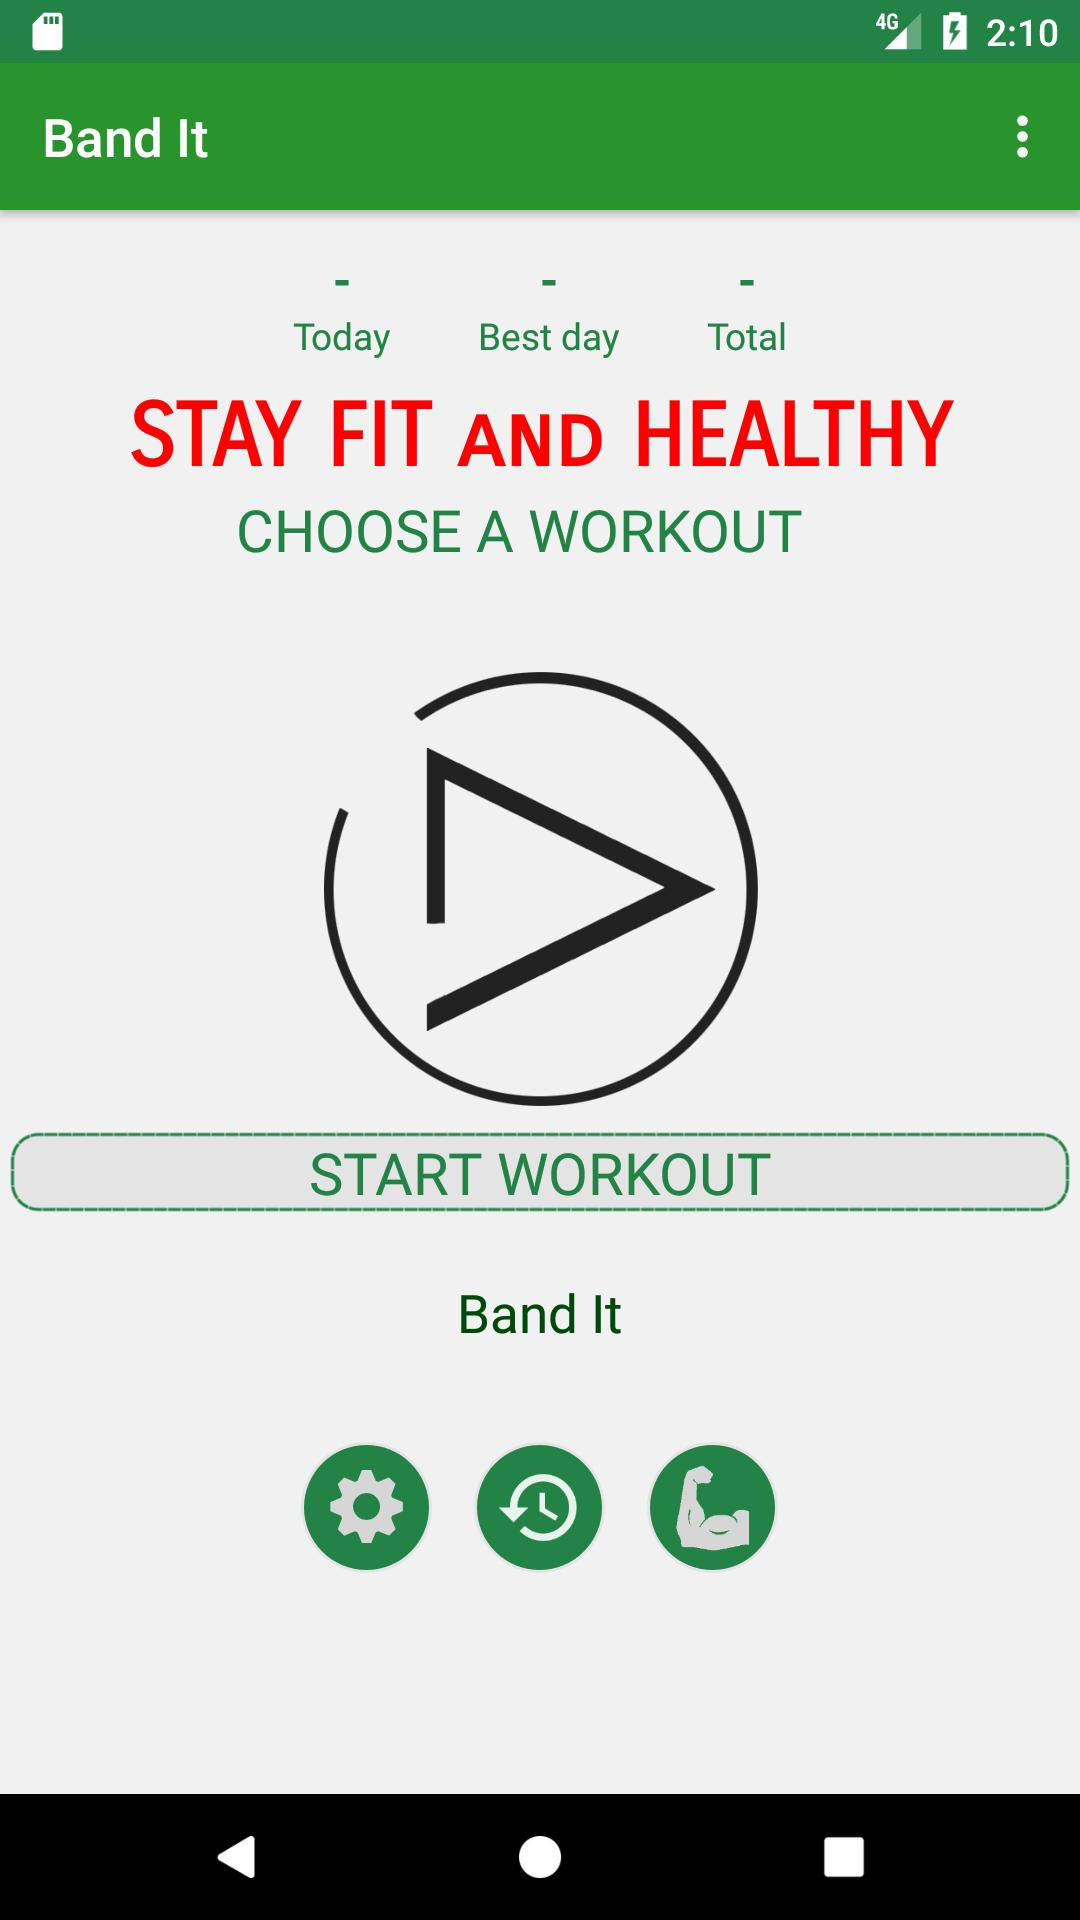 Band It Resistance Band Workout Routine For Android Apk Download